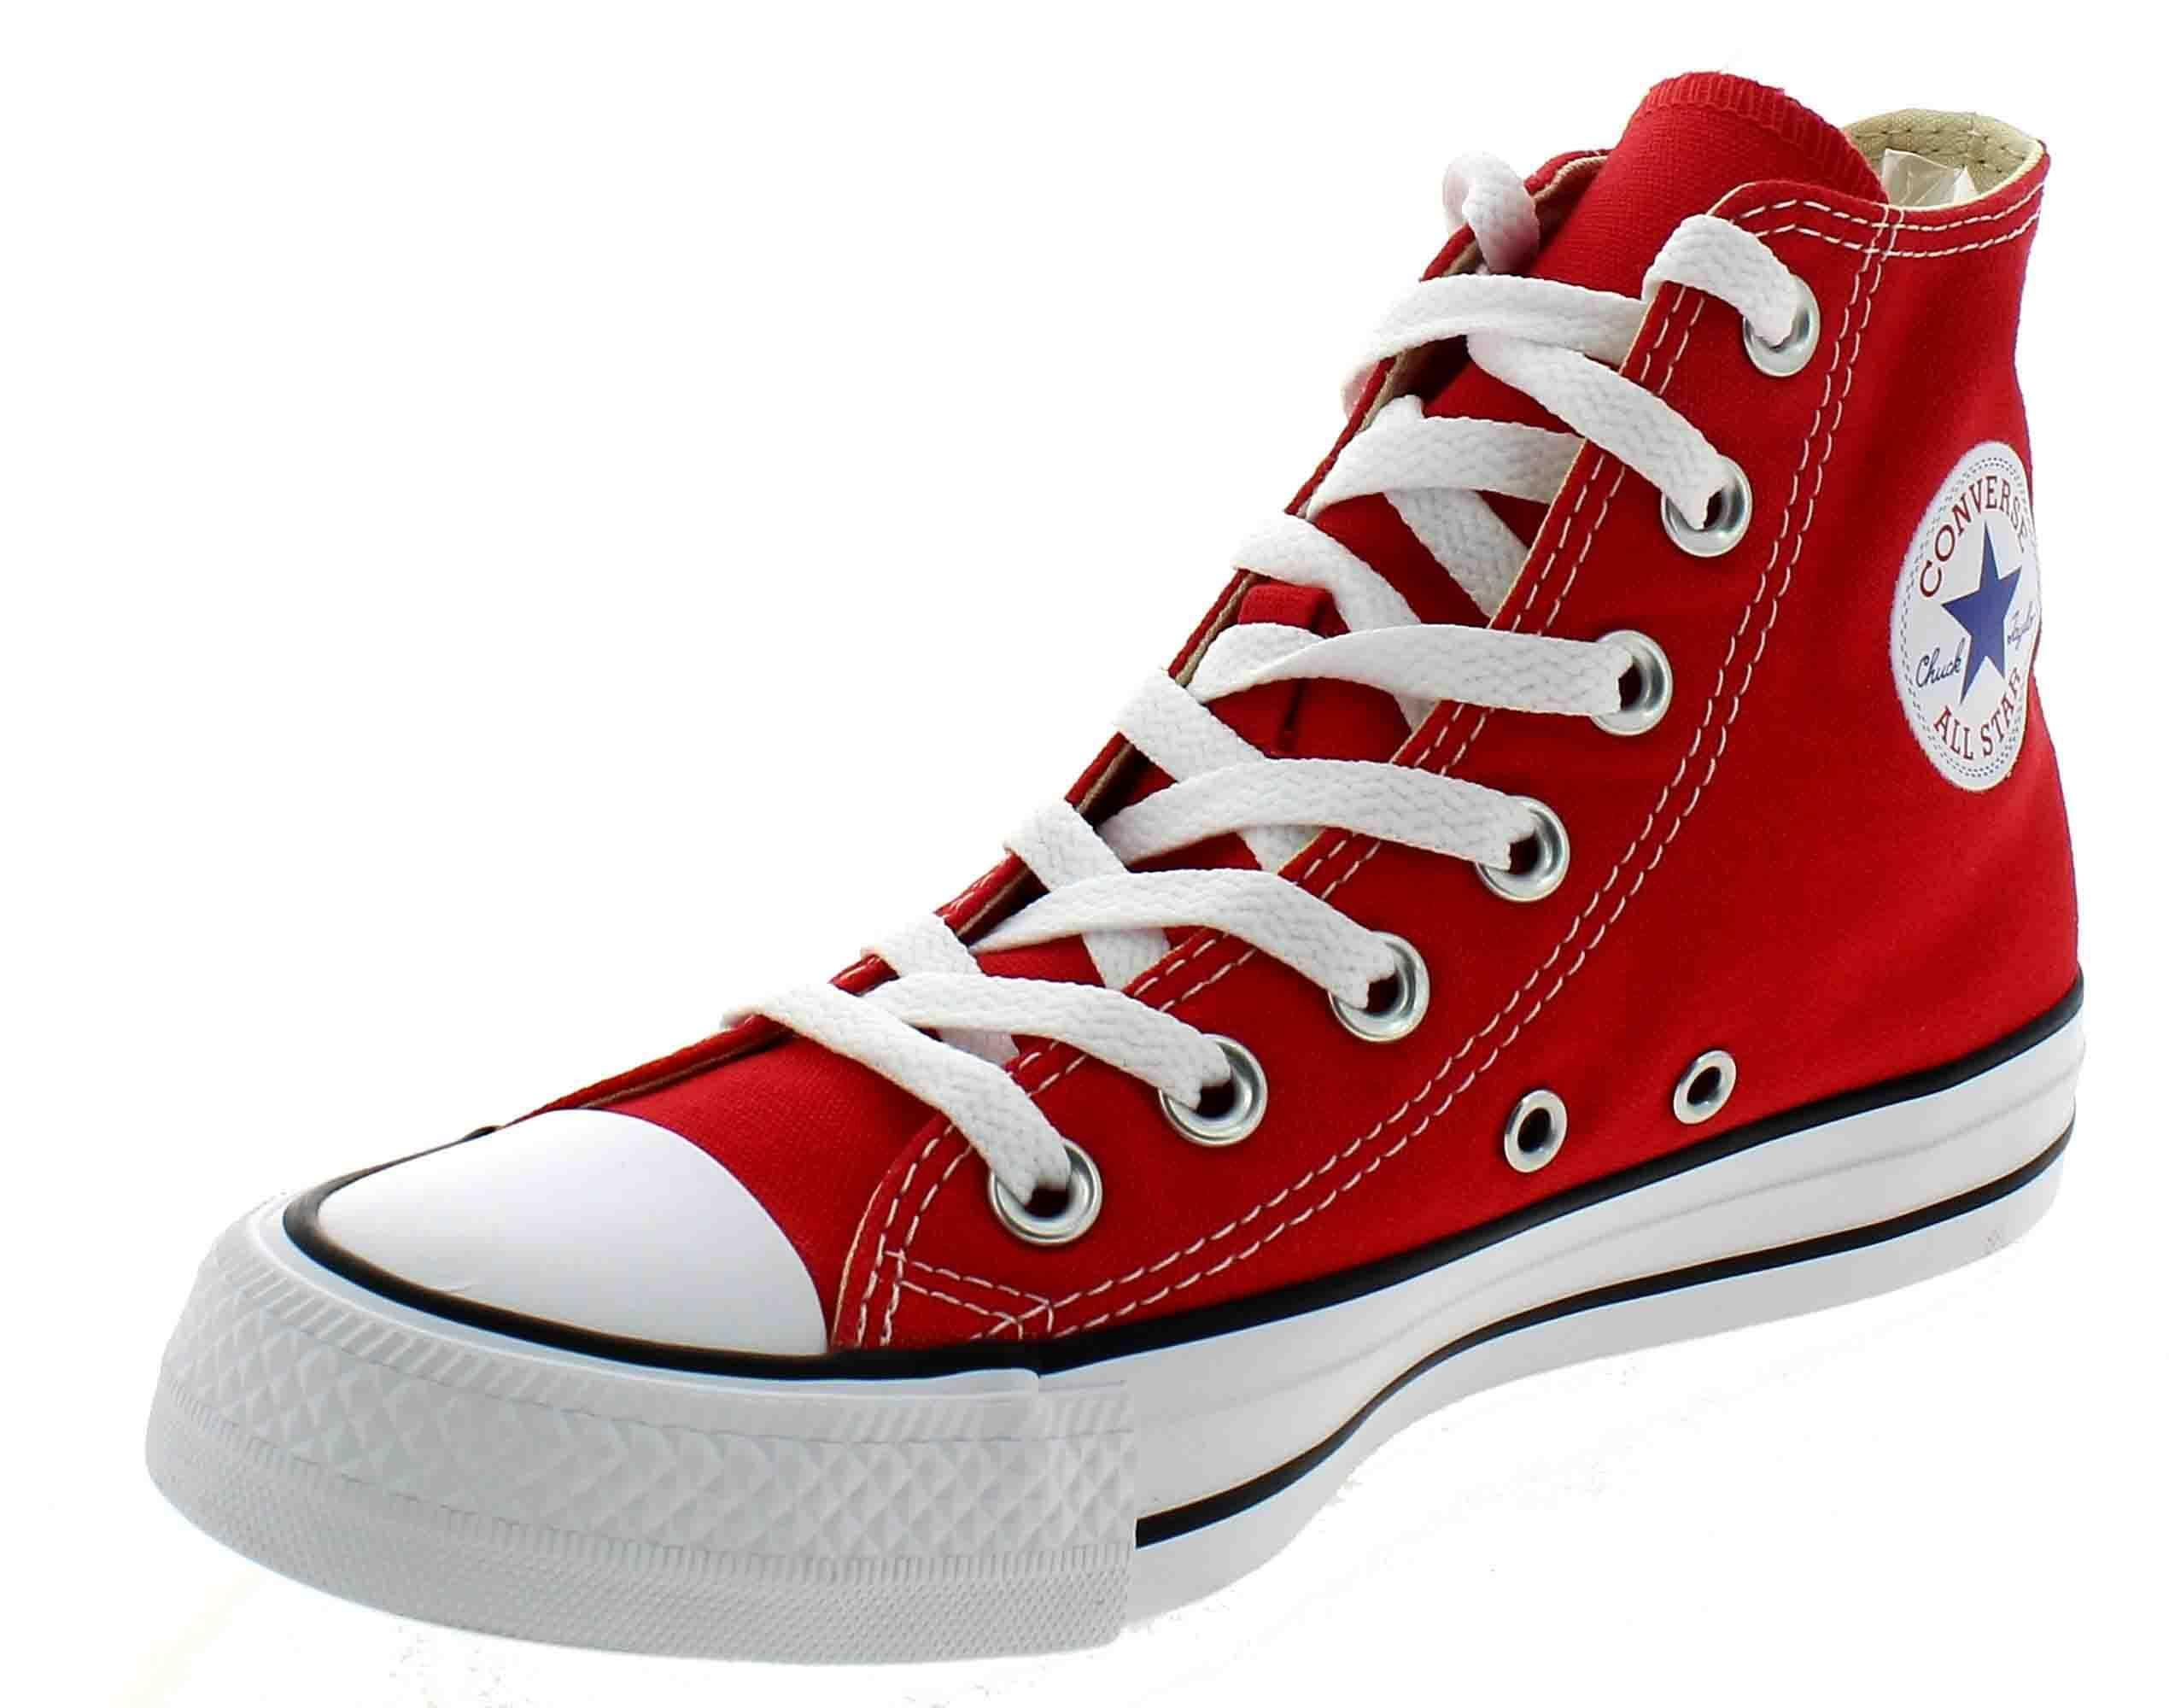 converse all star hi sport schuhe hohe rot m9621 ebay. Black Bedroom Furniture Sets. Home Design Ideas